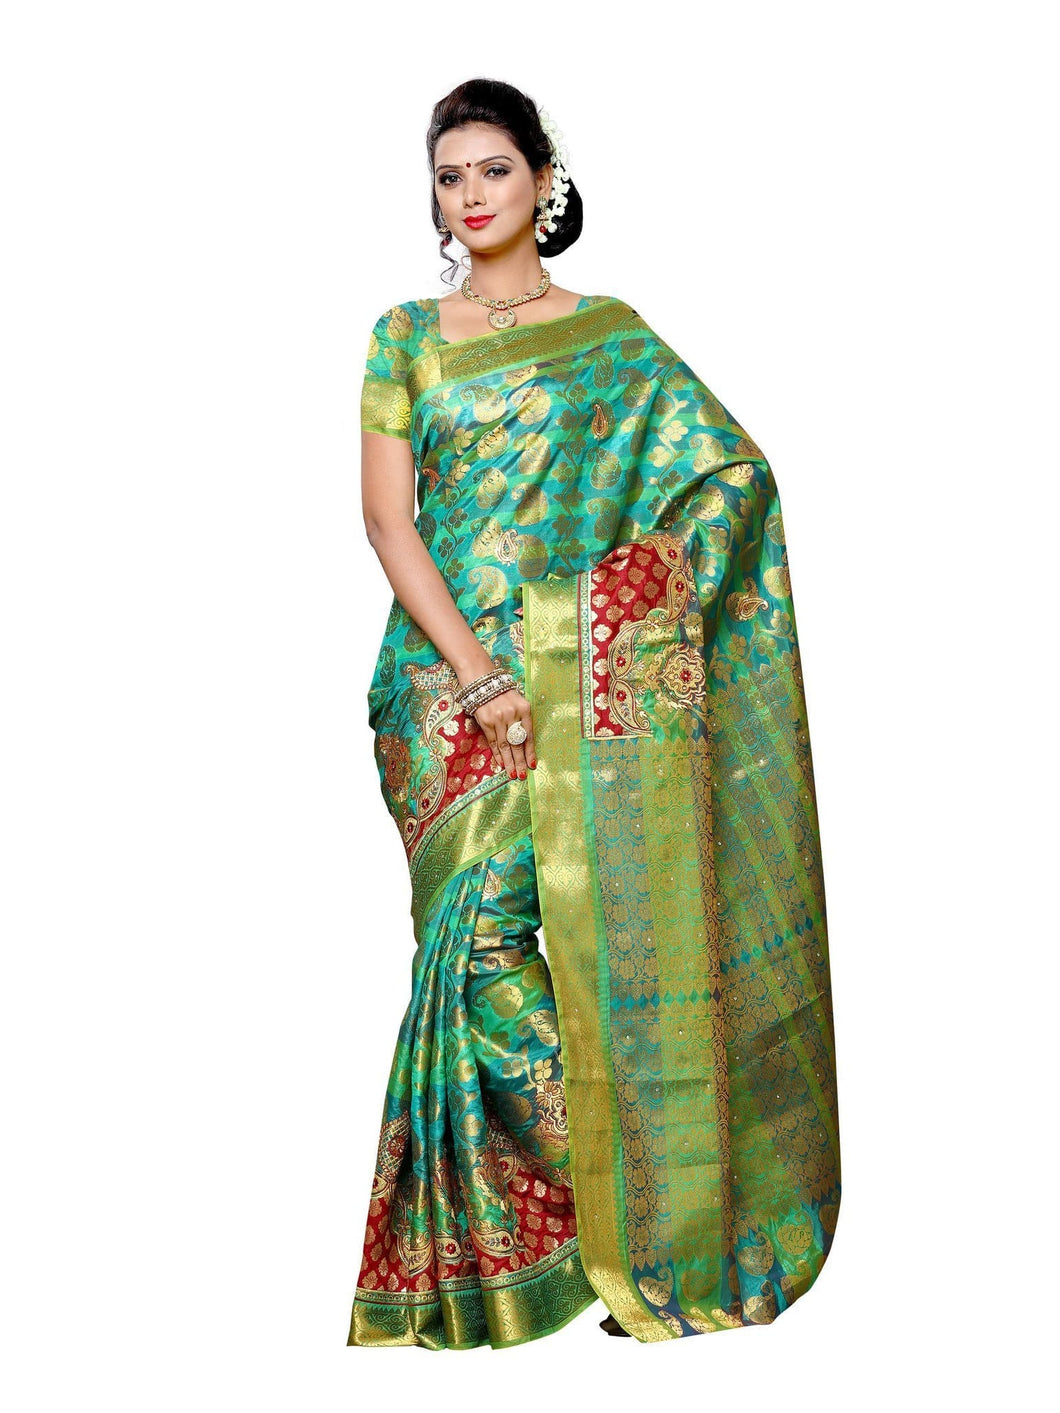 MIMOSA Motif Design Art Silk Kanjivaram Style Saree with Blouse in Color Turquoise (3371-107-kp-bi-emb-rm) - kupindaindia